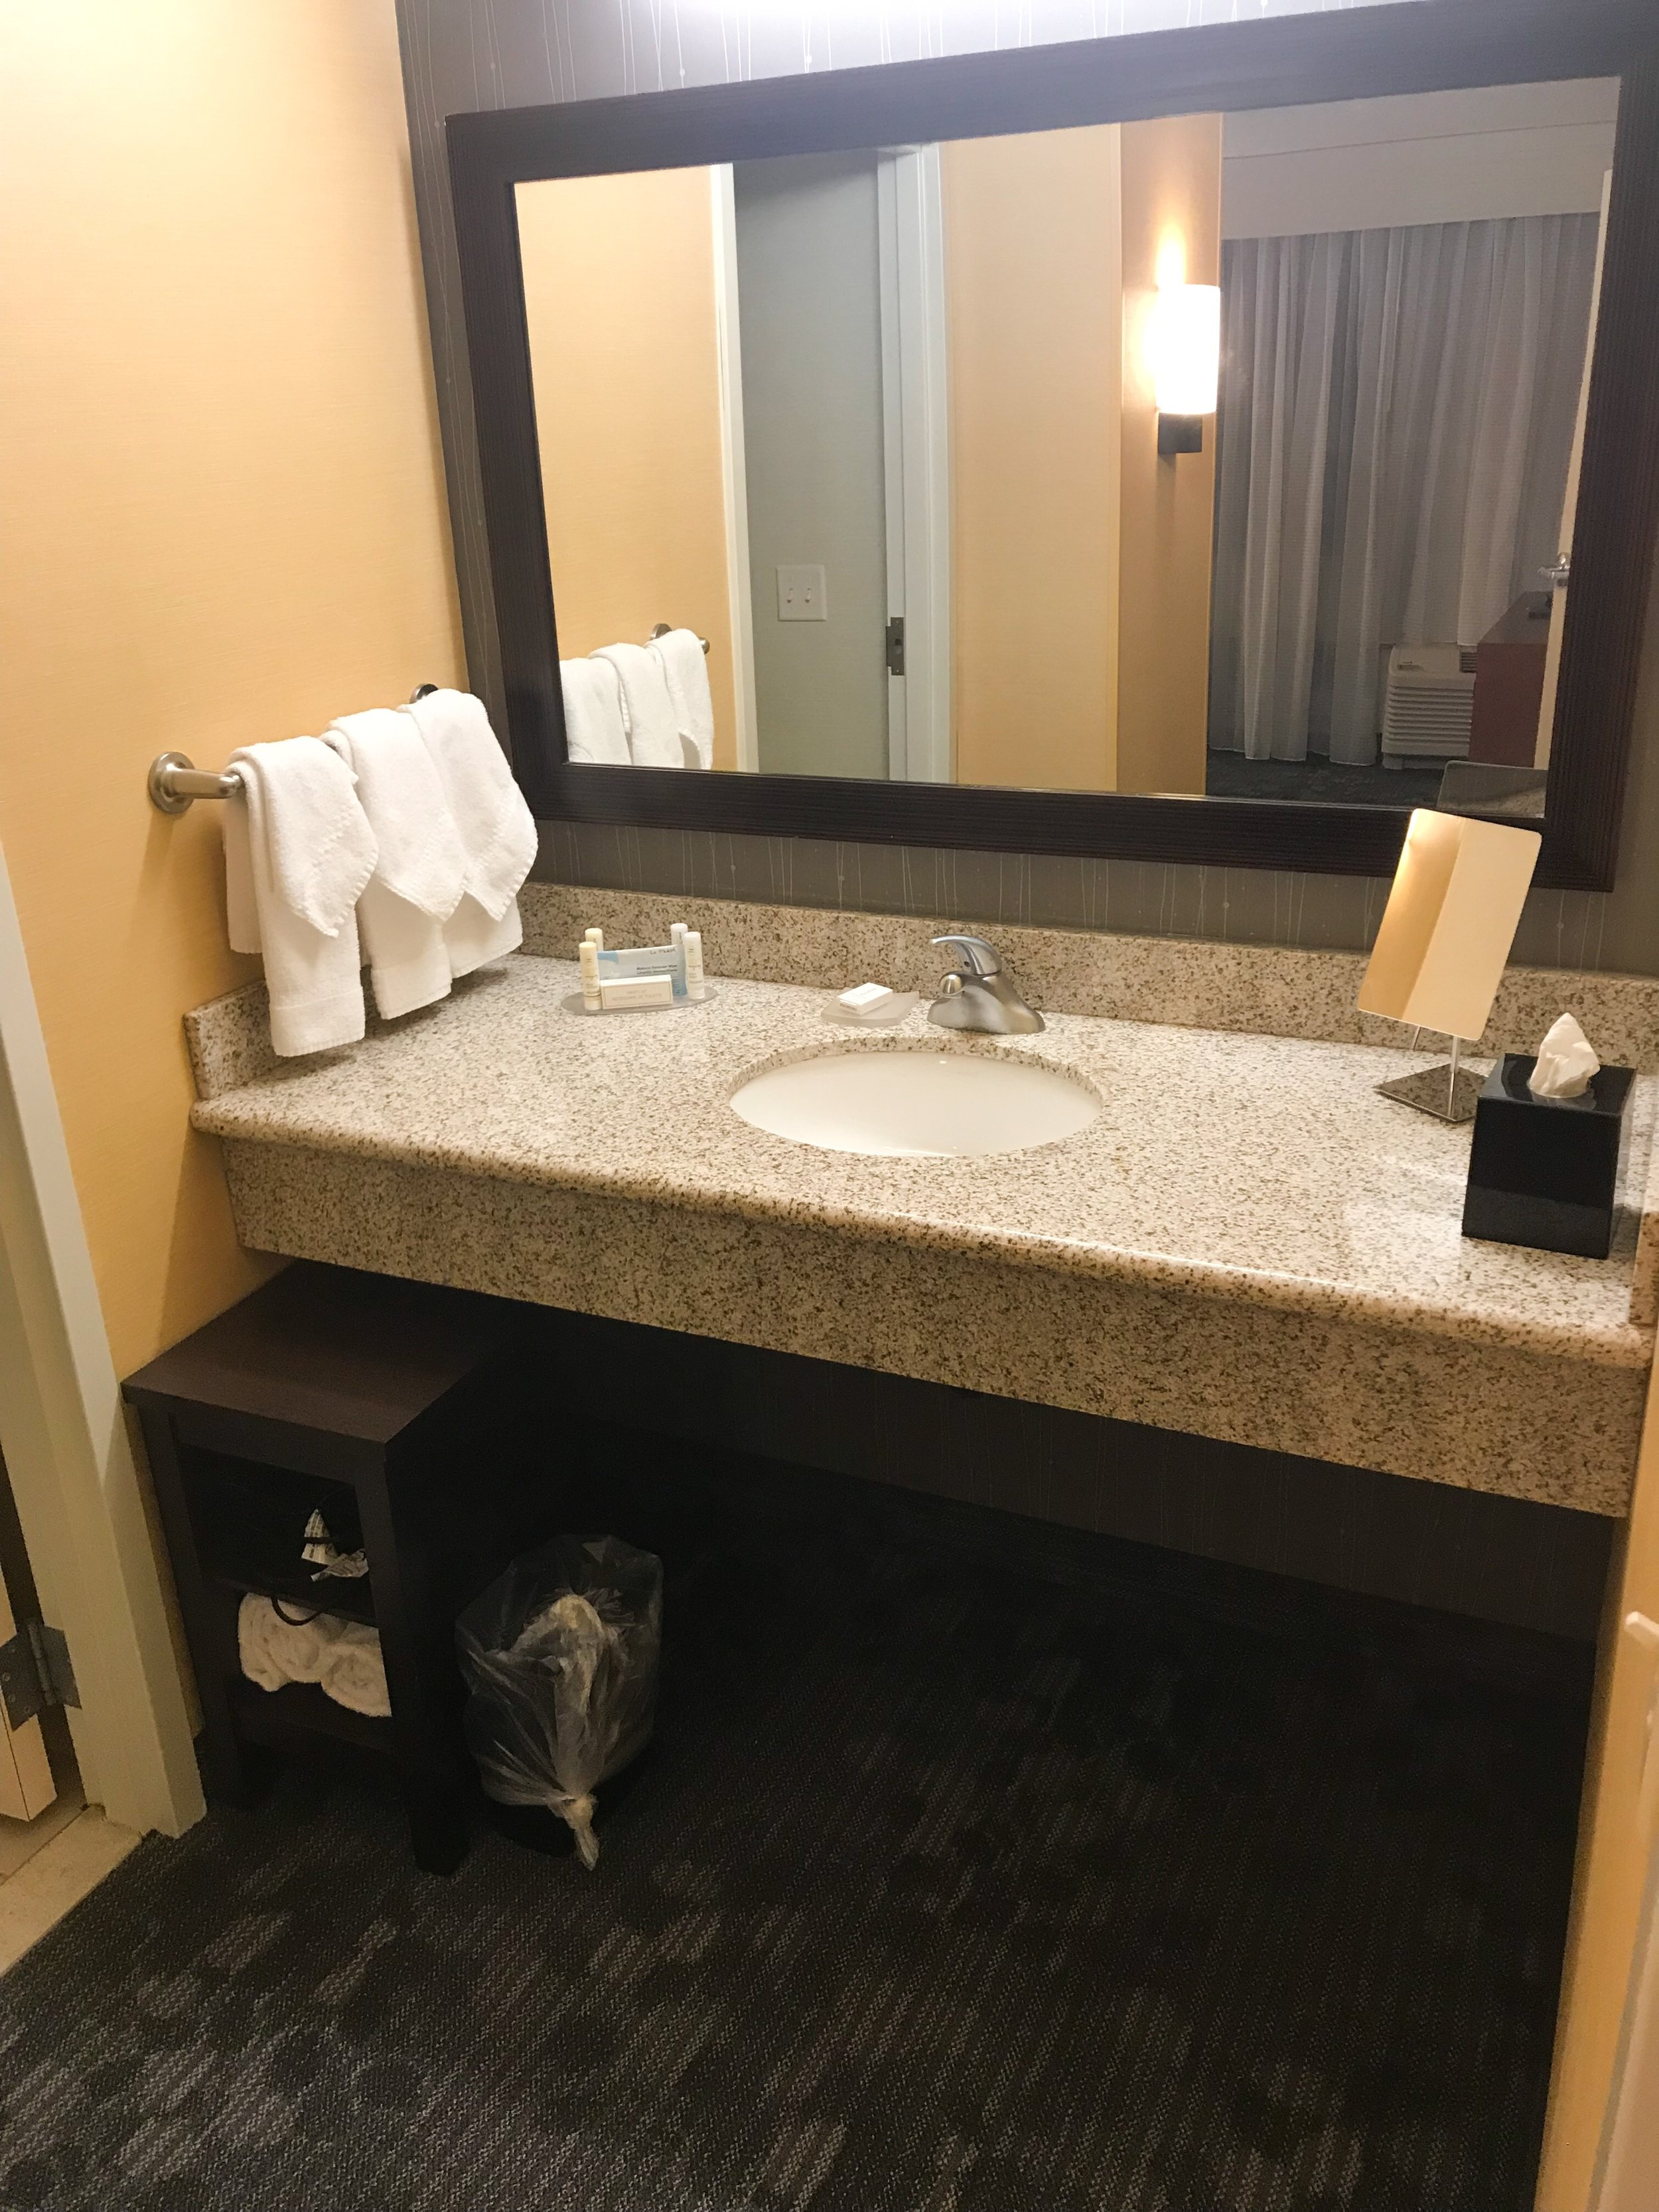 The bedroom had a single sink, but had plenty of counter space.